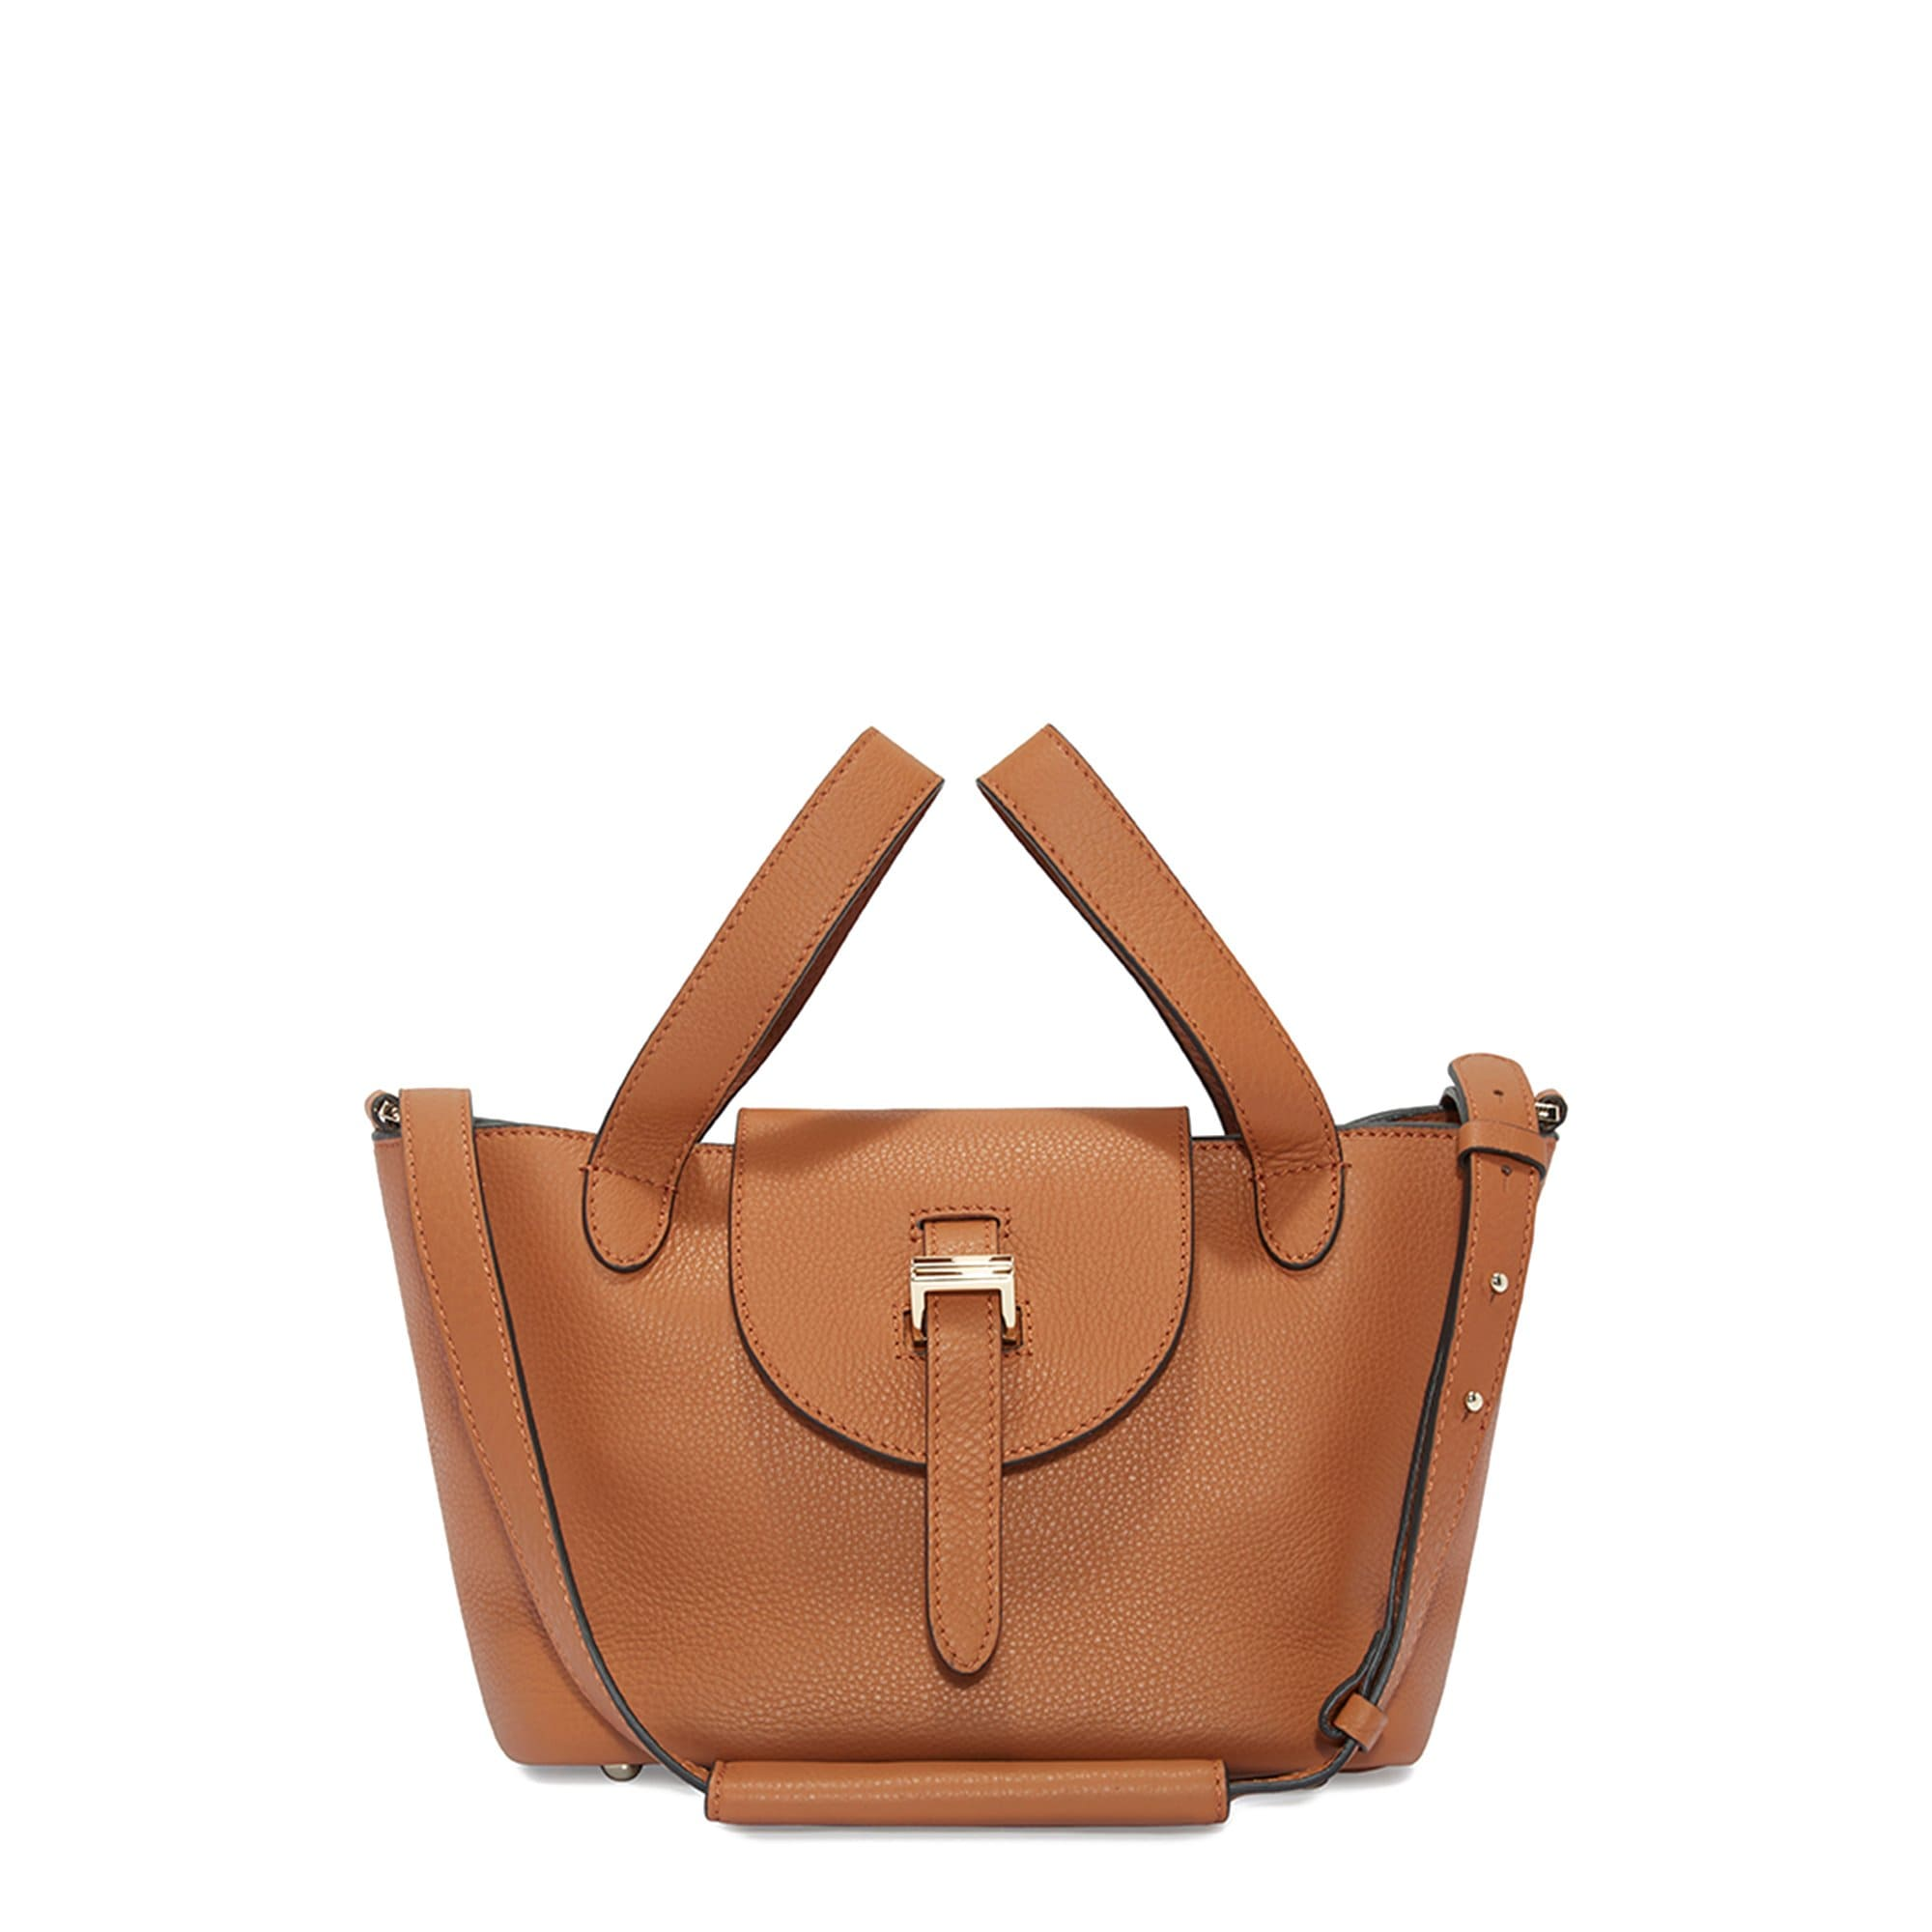 Thela Mini Tan Brown Cross Body Bag for Women